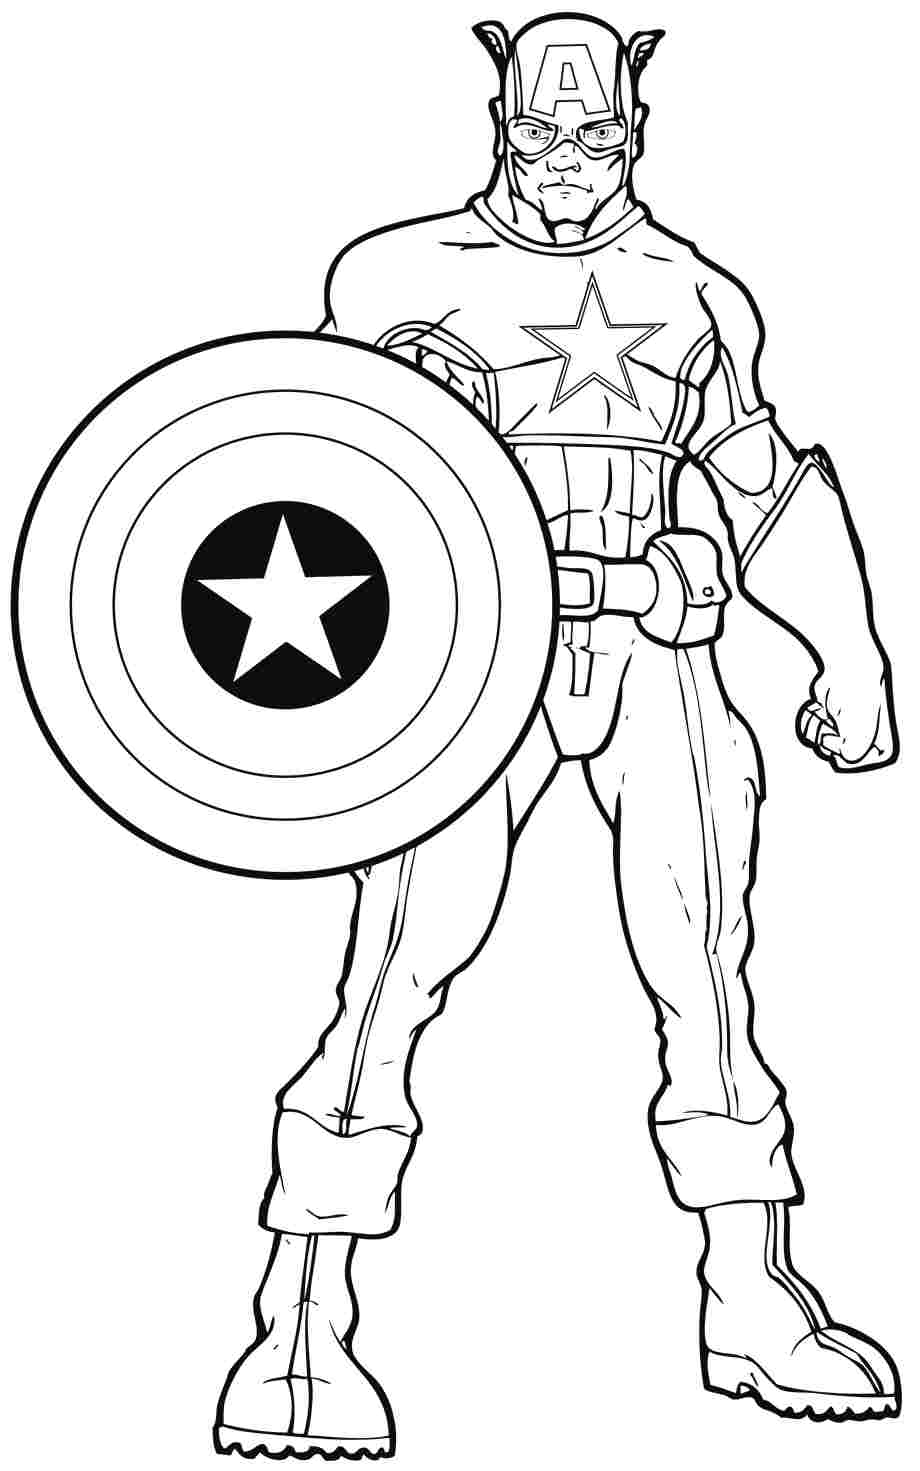 Super Heroes Coloring Pages Coloring Pages Printable Of 30 Dc Superhero Coloring Pages Dc Marvel Ic Superhero Girl to Print